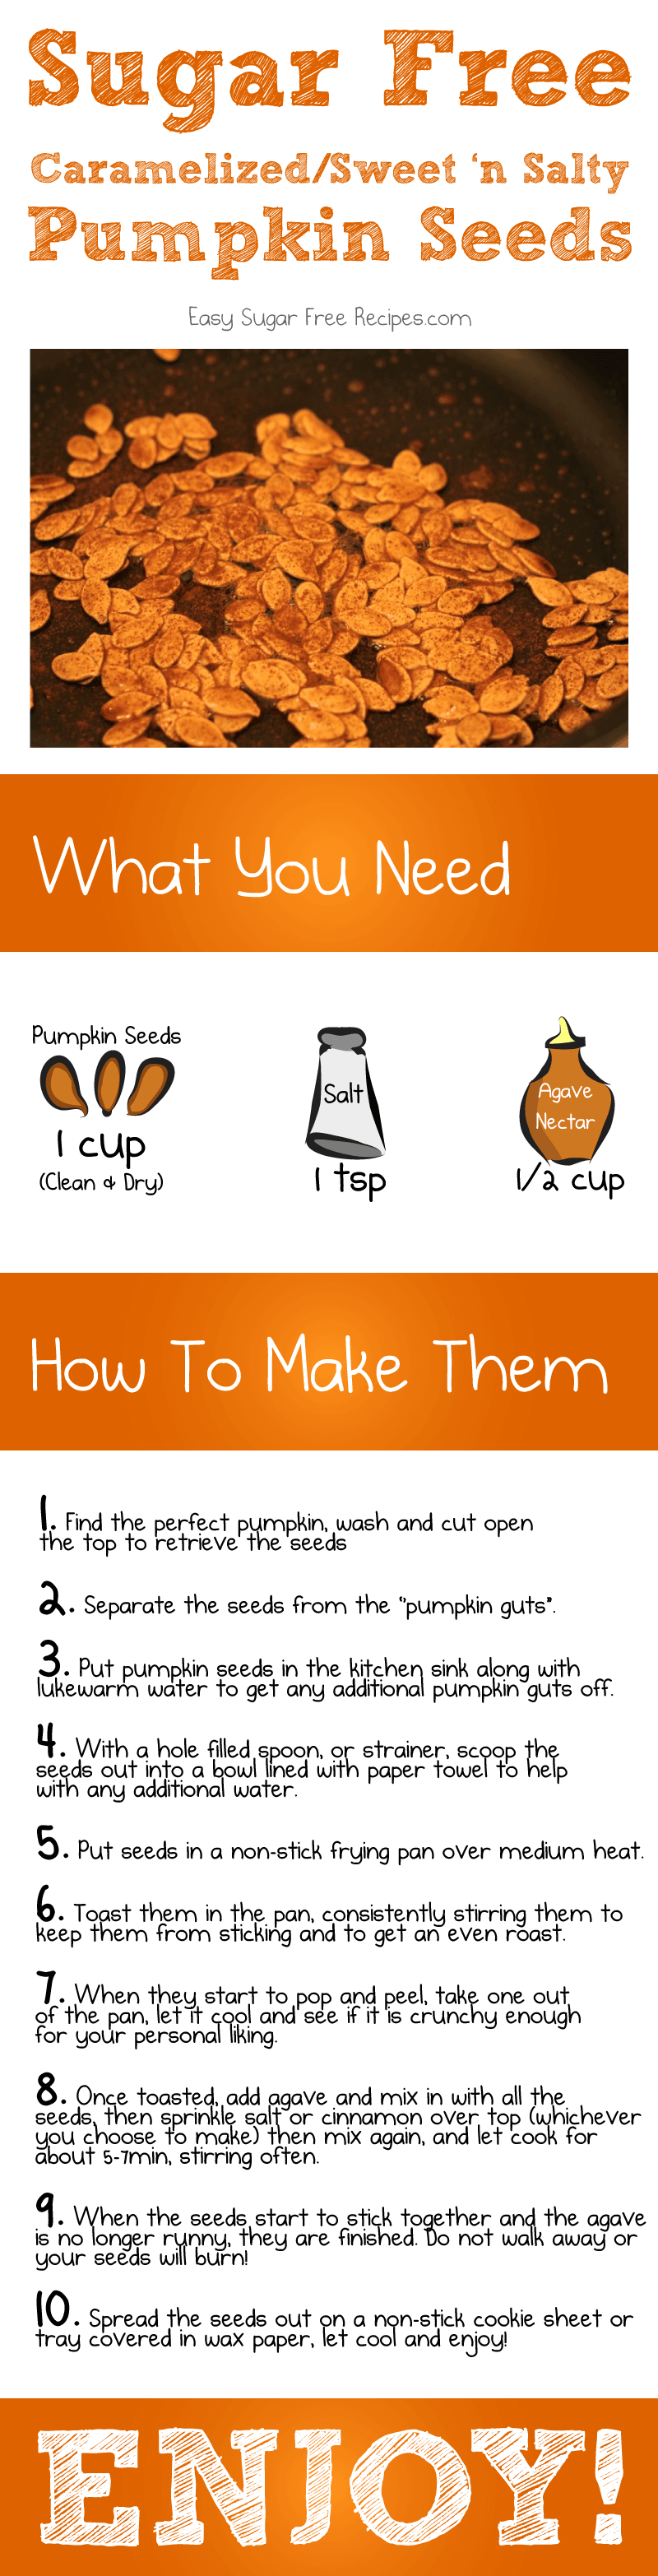 A cartoon comic for sugar free toasted pumpkin seeds with directions and ingredients.